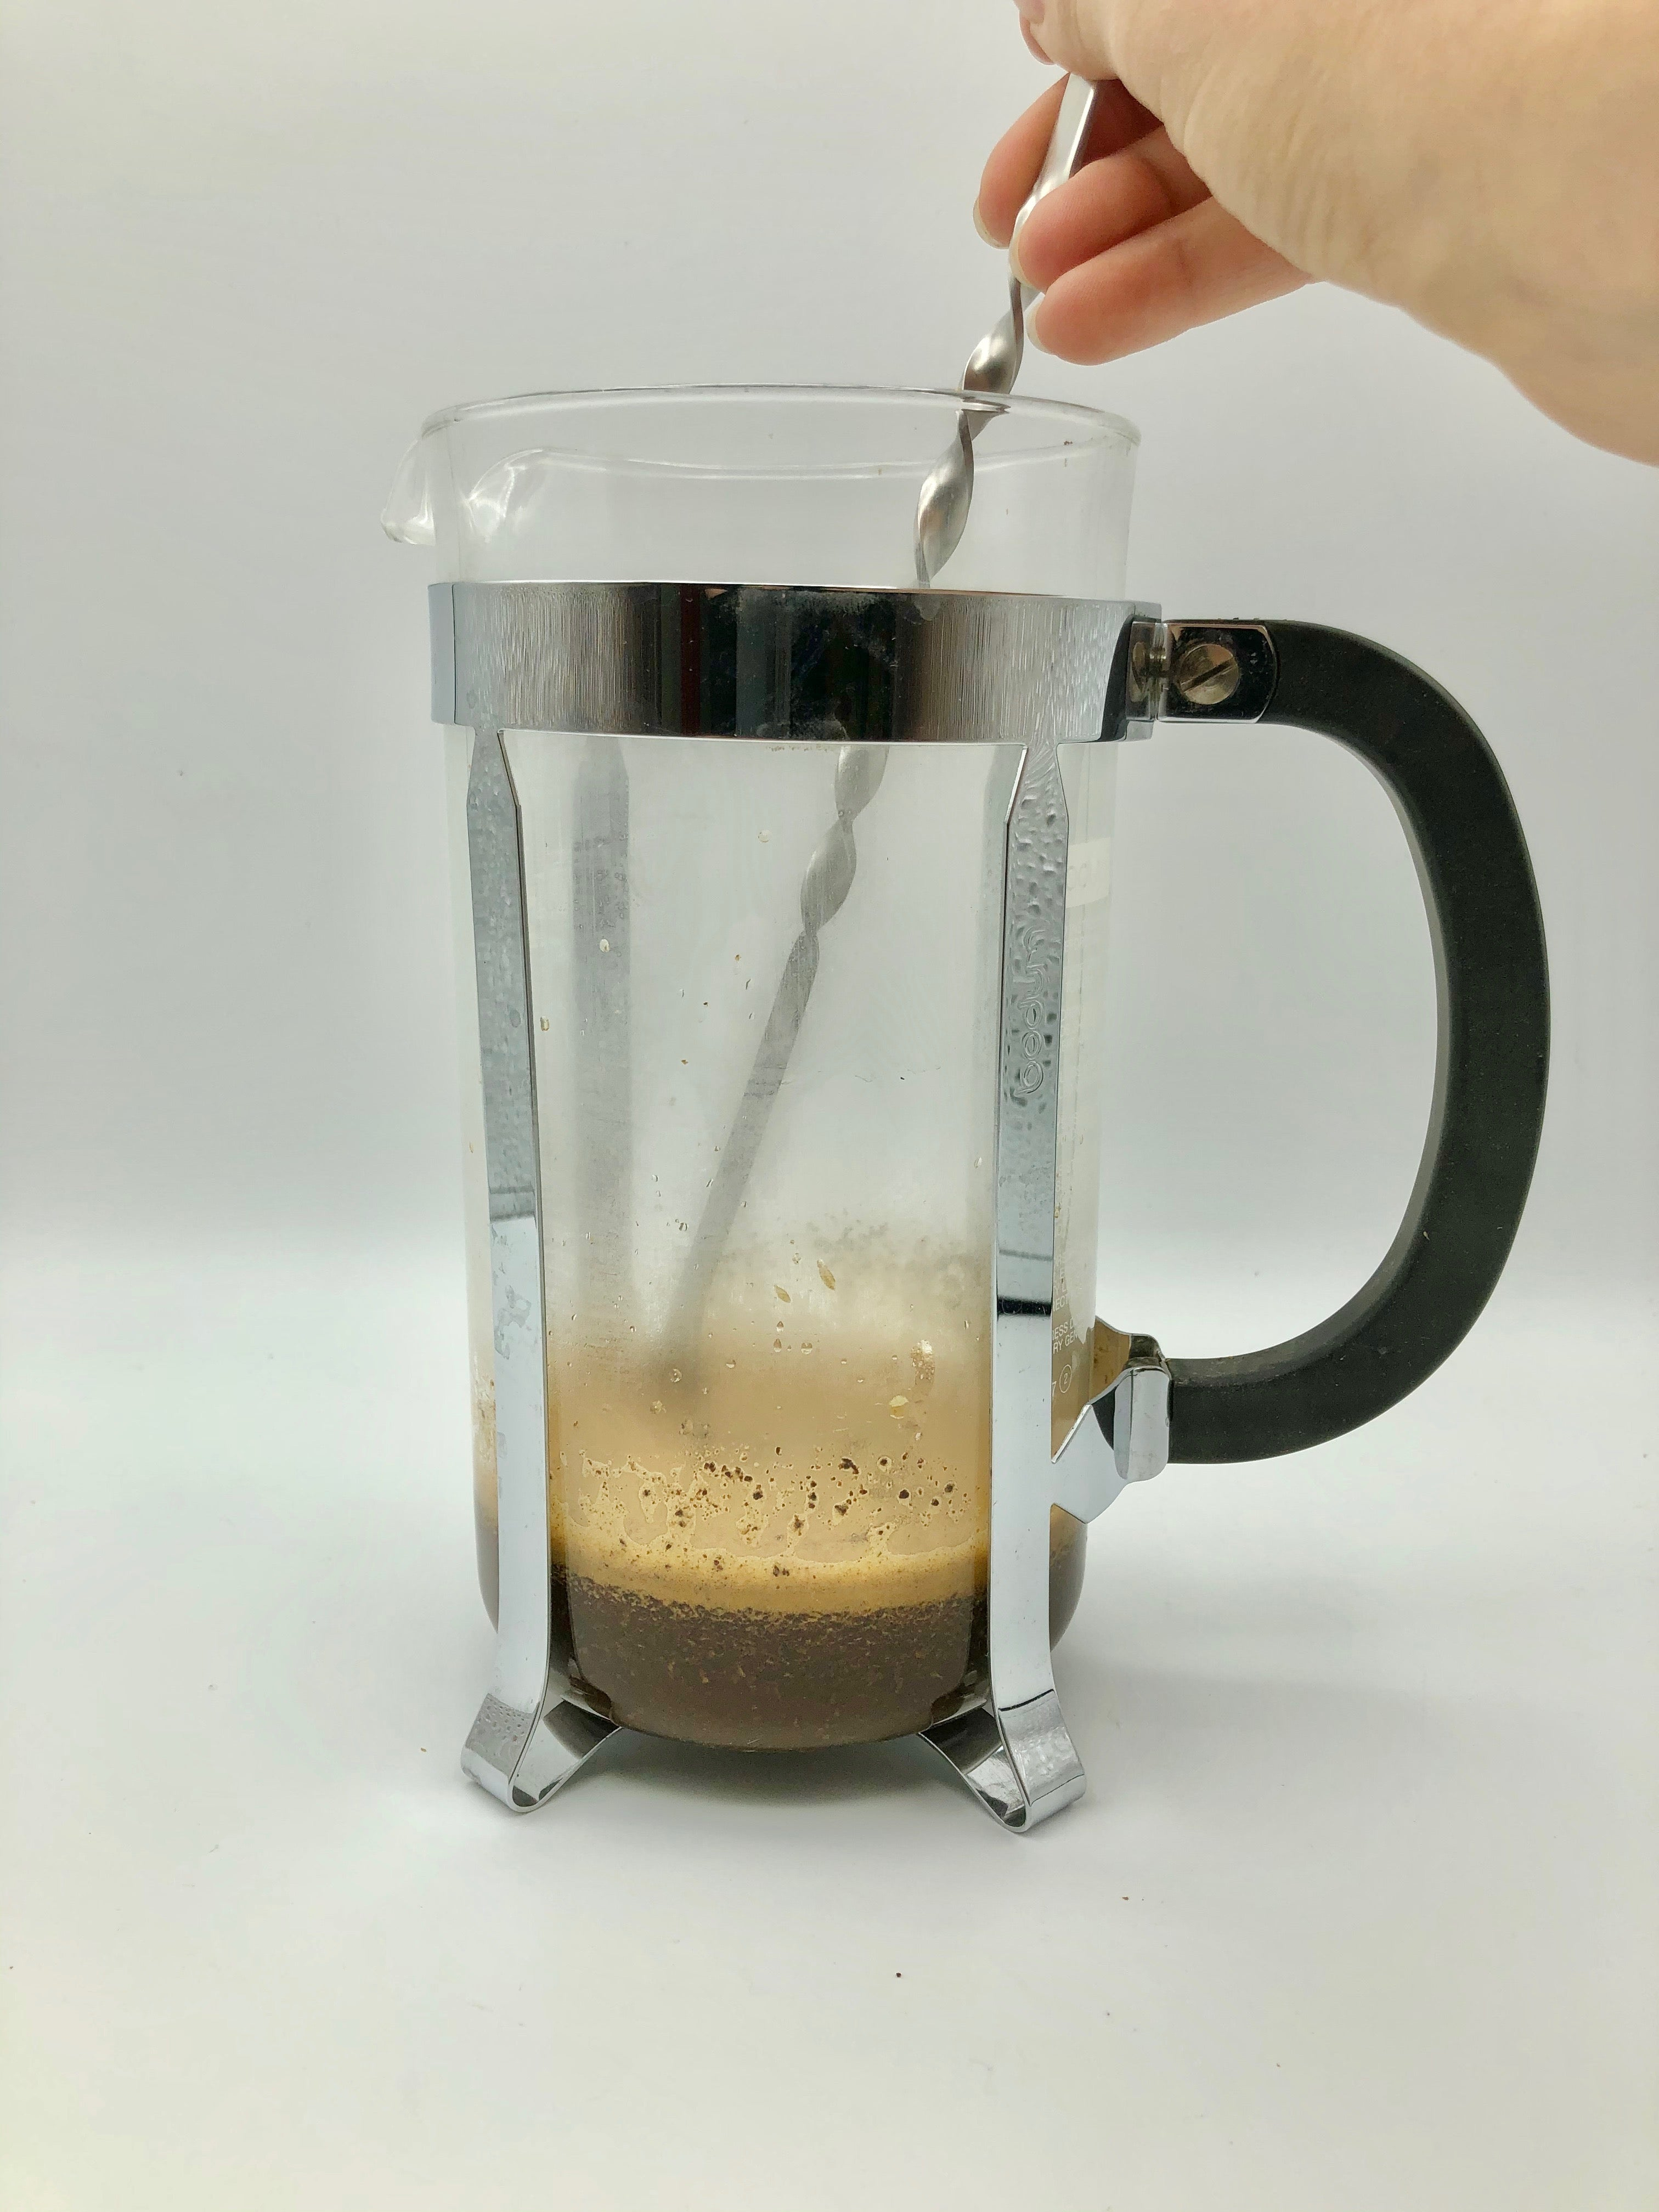 woman's hand string blooming coffee in a French Press